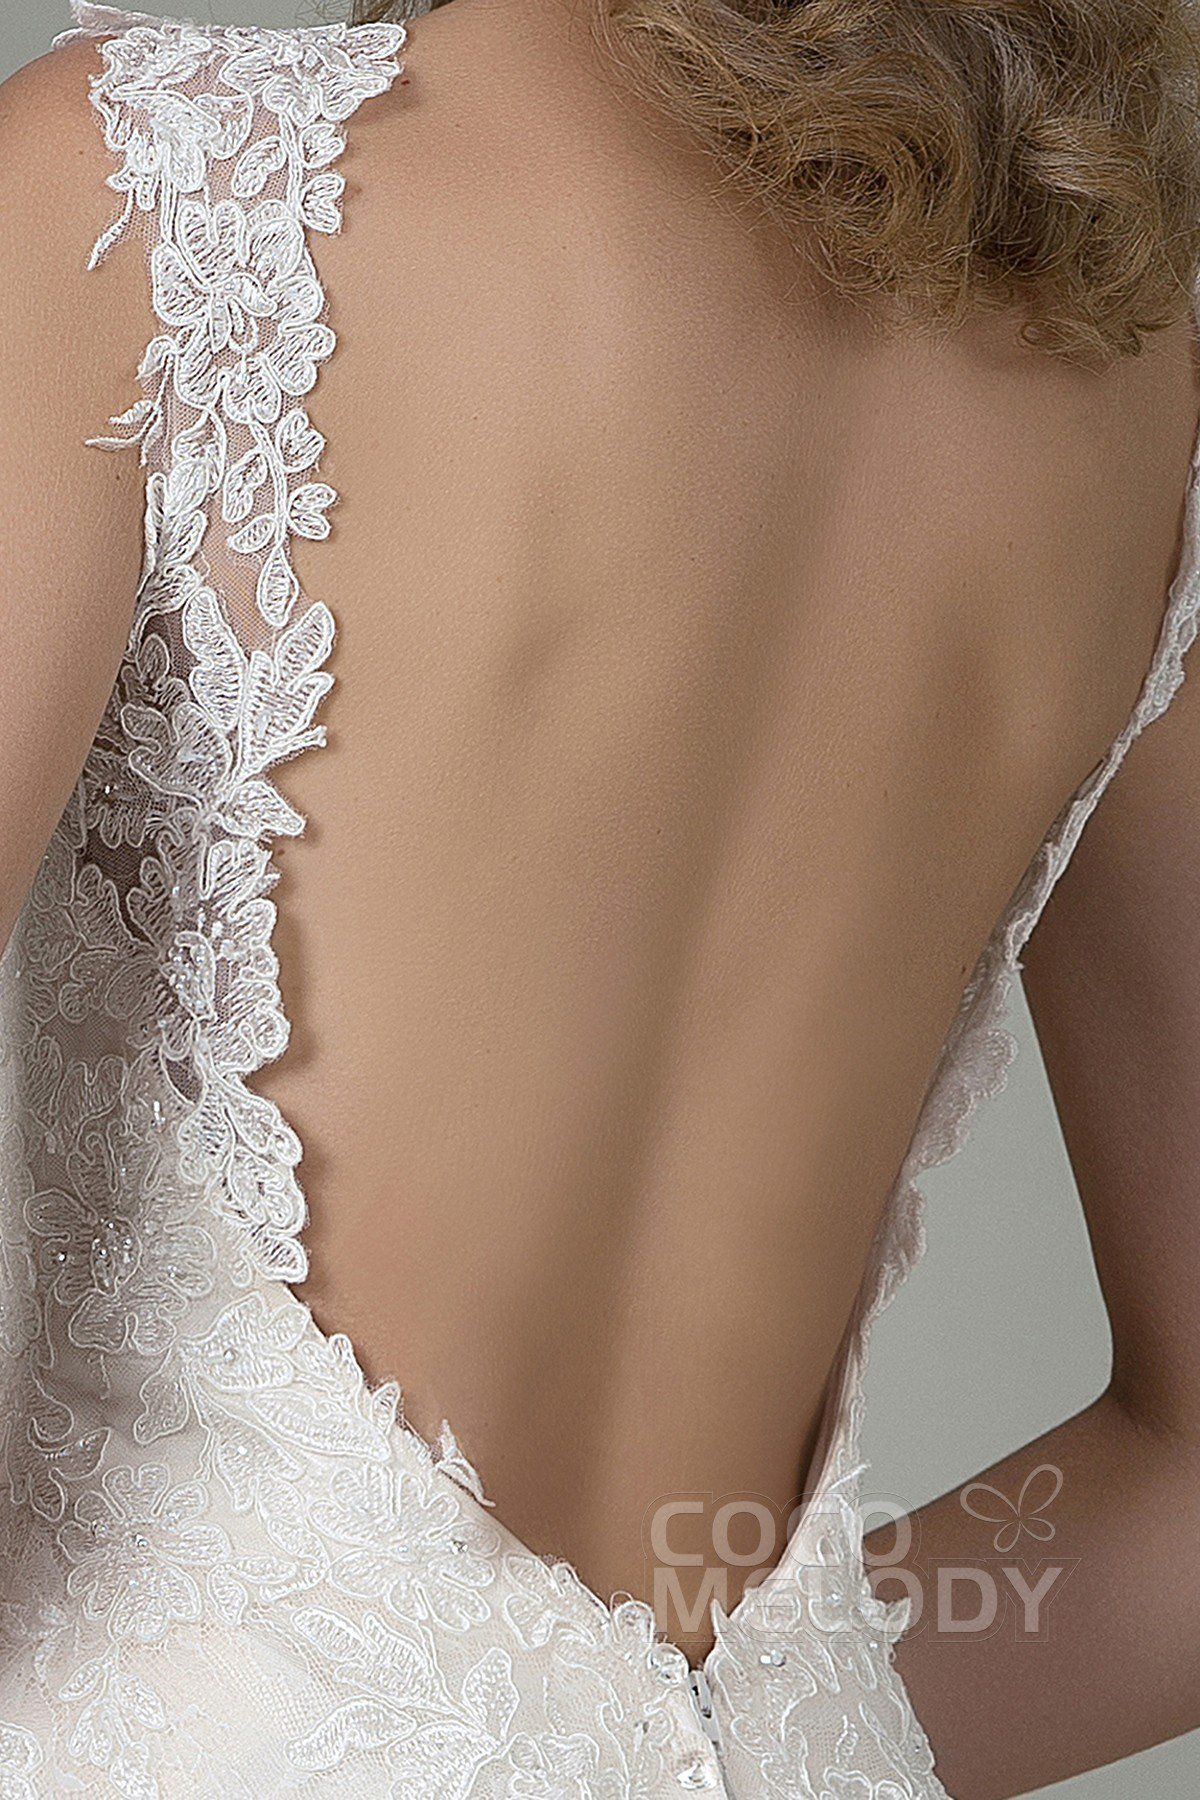 Champagne and ivory wedding dress  Fabulous SheathColumn Straps Natural Train Lace IvoryChampagne